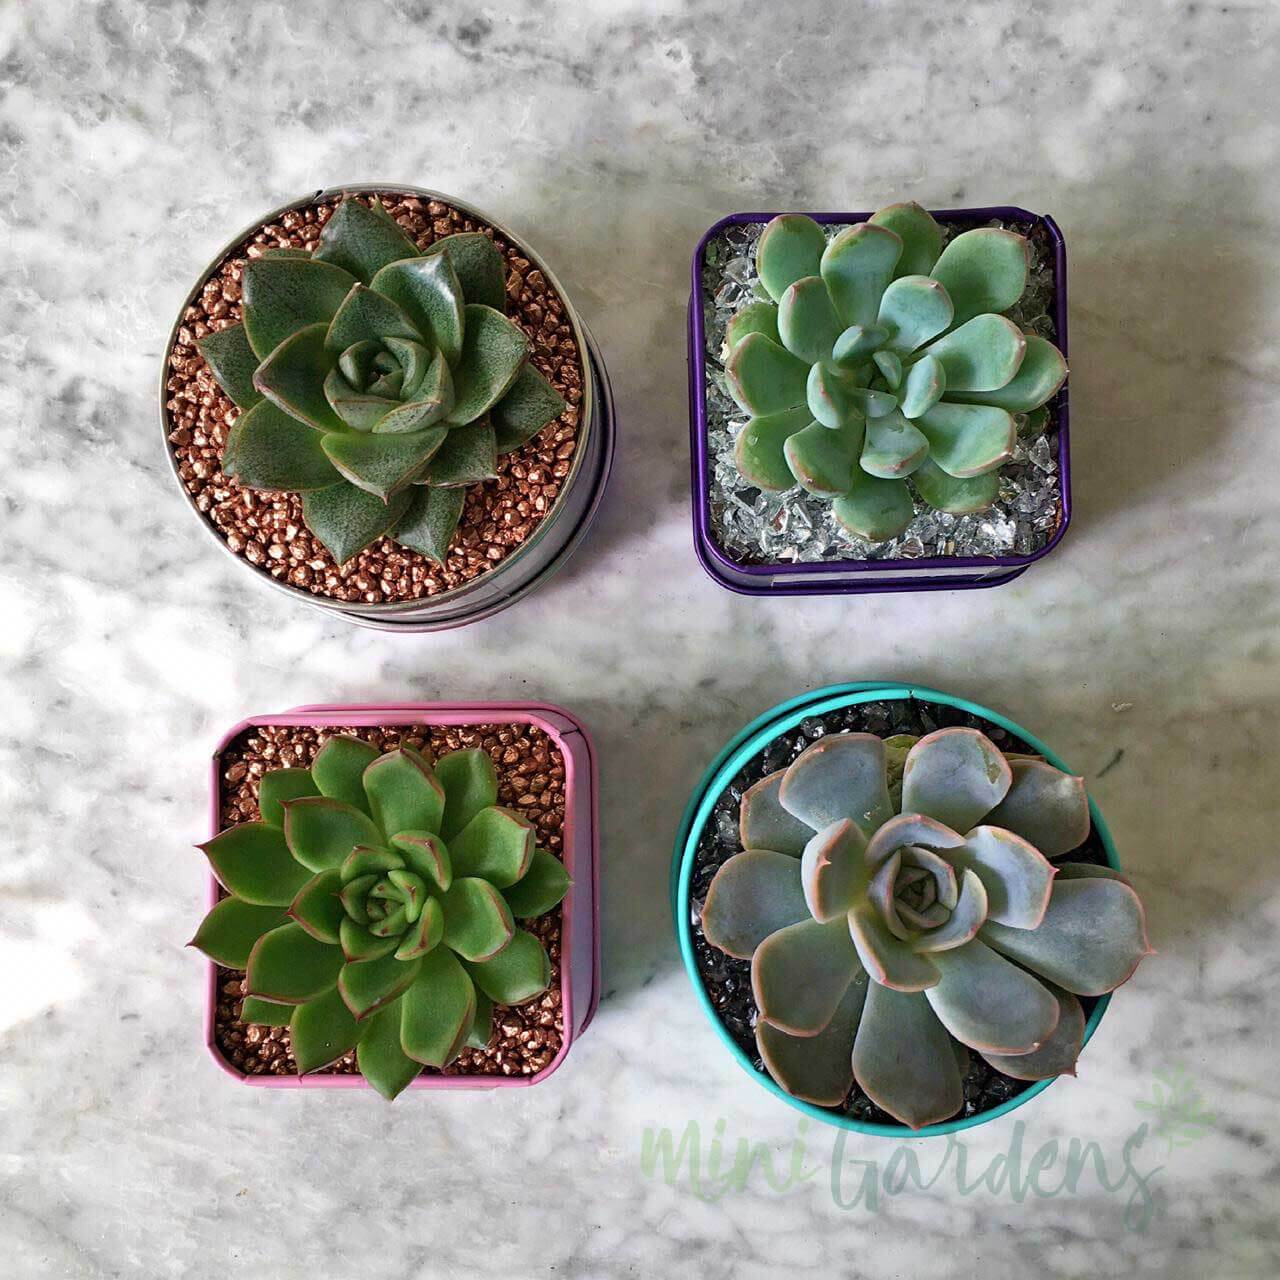 MiniGardens-Corporate-Gifts-Succulents-Dubai-Sharjah-Abu-Dhabi